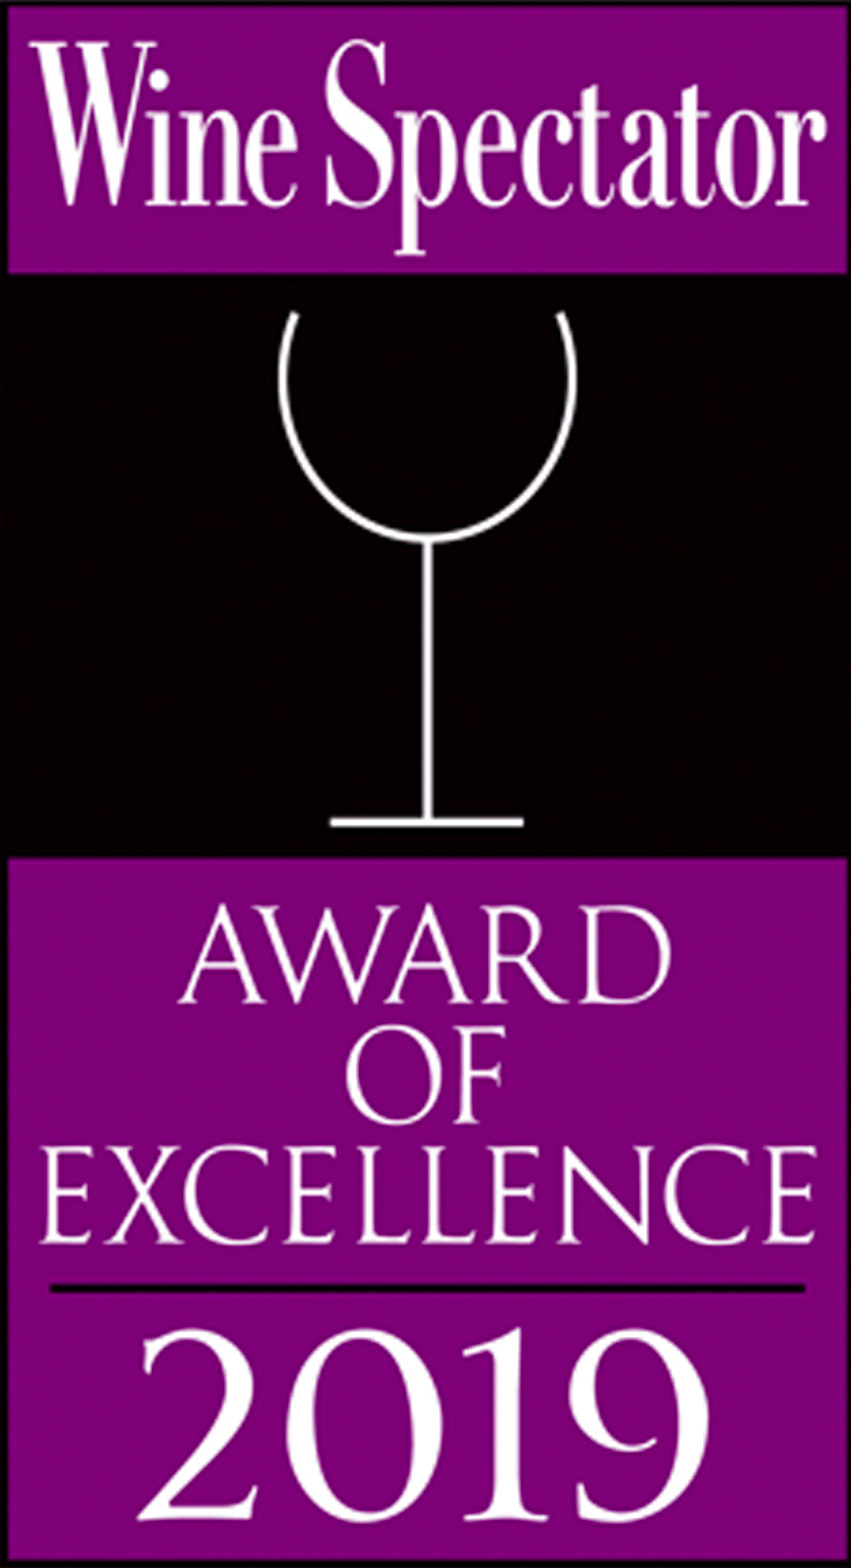 Twenty Eight Wine Spectator Award 2019